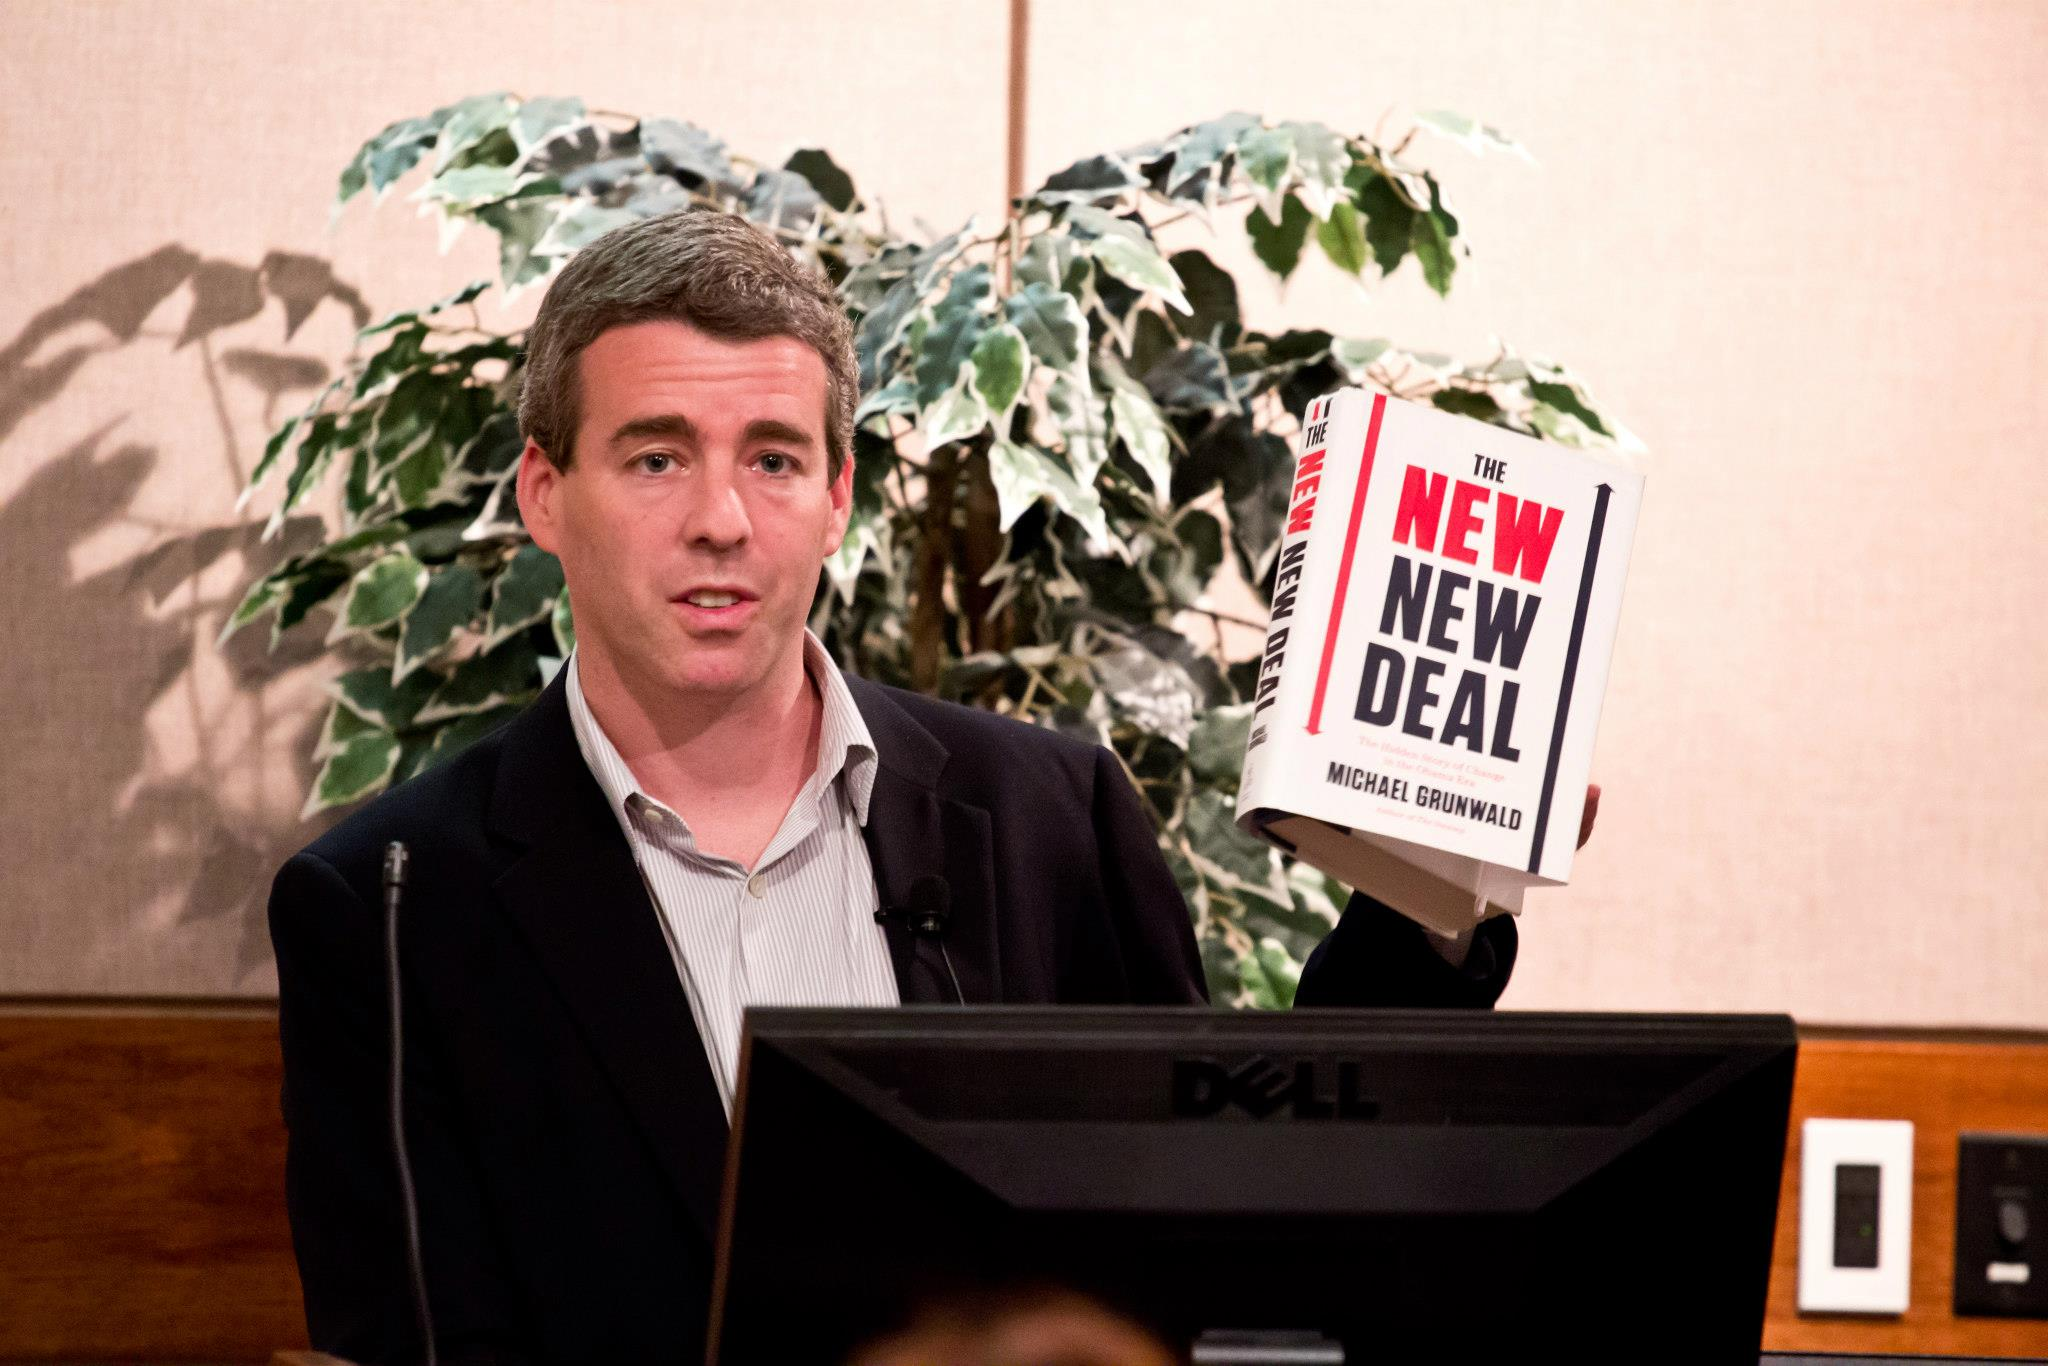 Michael Grunwald at Northeastern University. Image courtesy of Northeastern University Libraries.